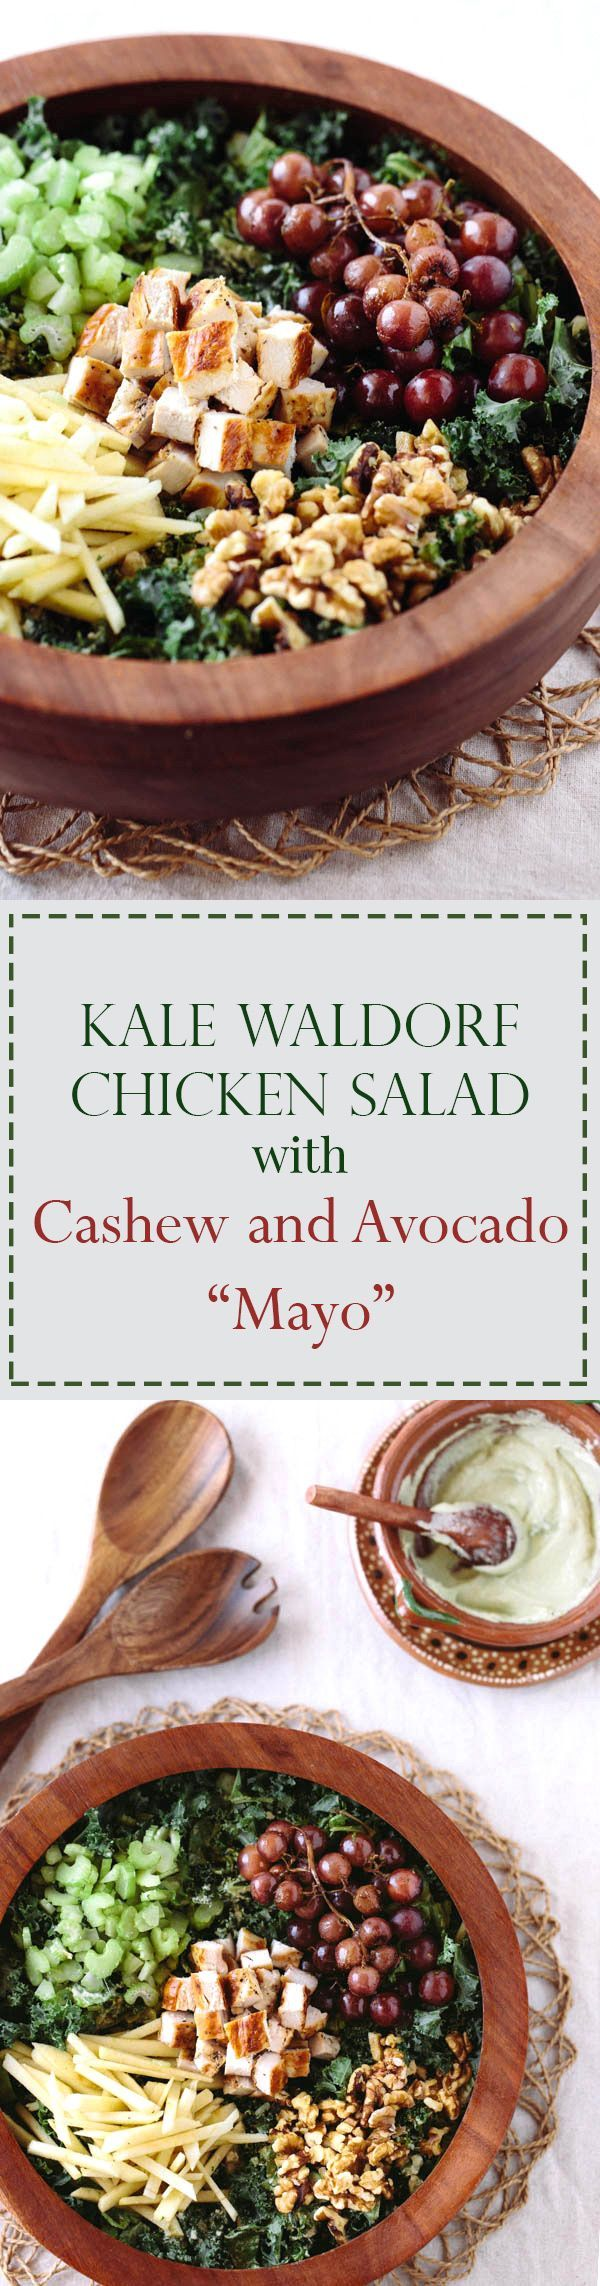 "Kale Waldorf Chicken Salad with Cashew & Avocado I Classic Waldorf Salad with a twist. Perfect for the whole family on a weeknight. You will love the cashew and avocado ""mayo"" sauce."